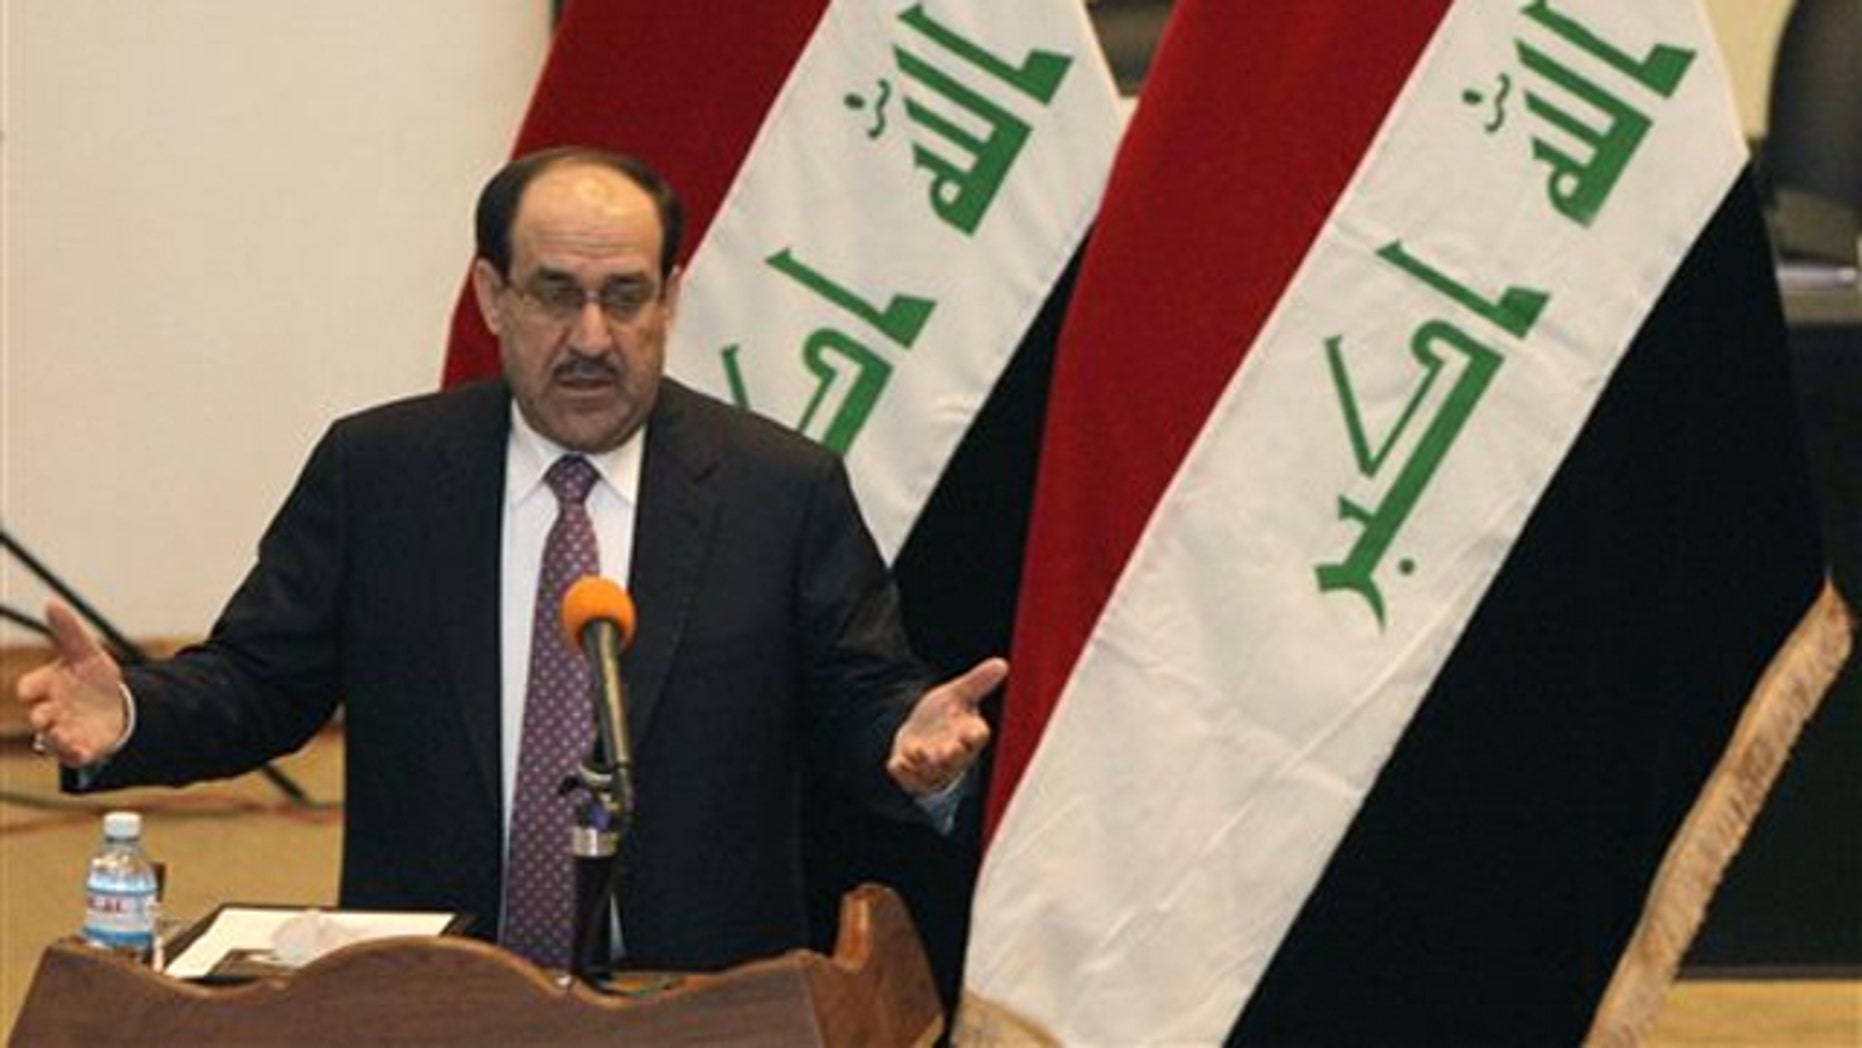 Iraqi Prime Minister Nouri al-Maliki speaks to Iraqi lawmakers before submitting his new government for approval in Baghdad, Iraq, Dec. 21.